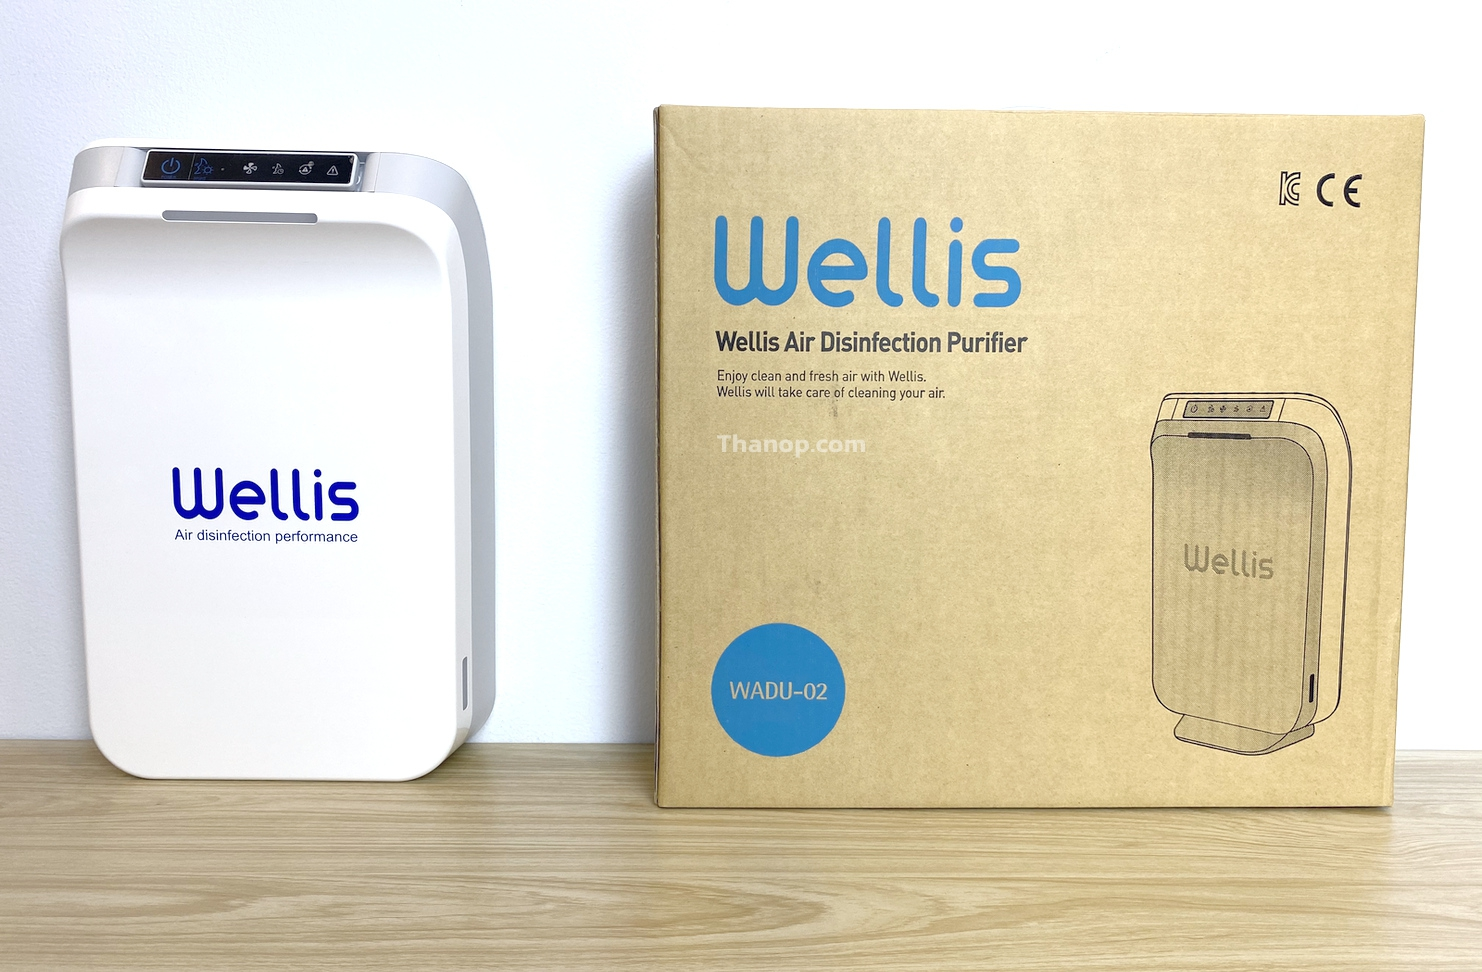 wellis-air-disinfection-purifier-featured-image